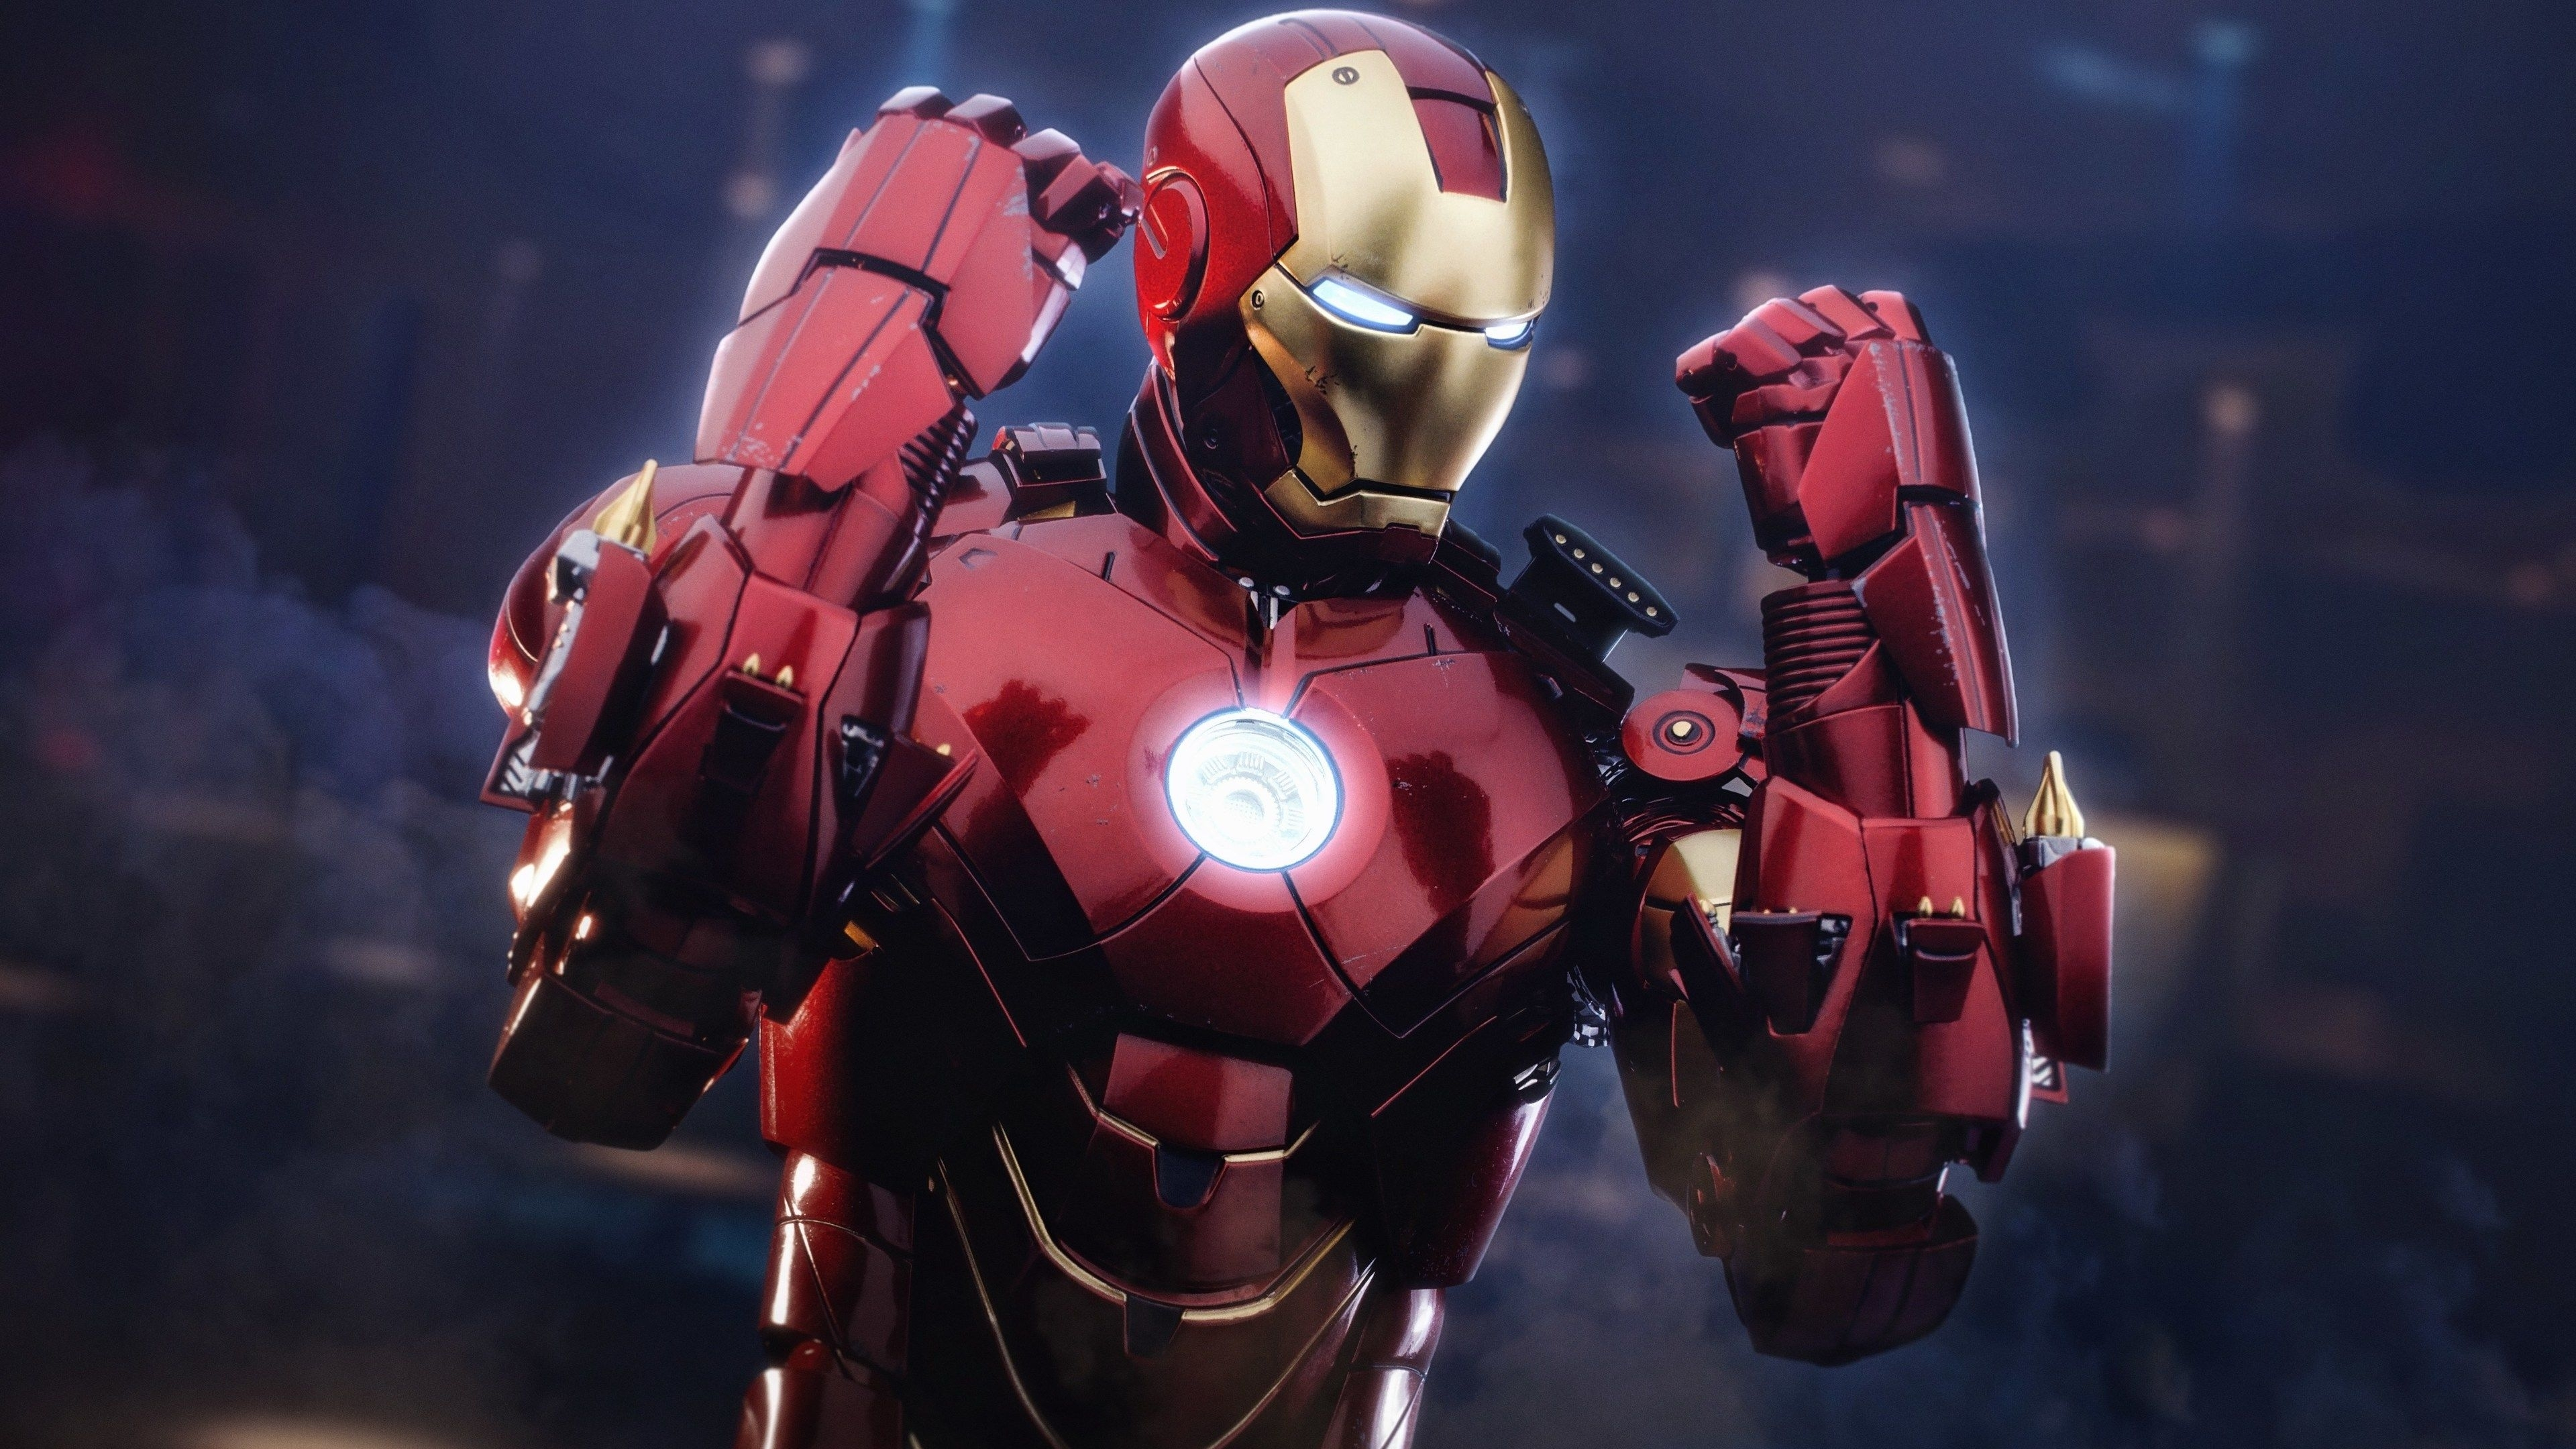 Iron man with gauntlet